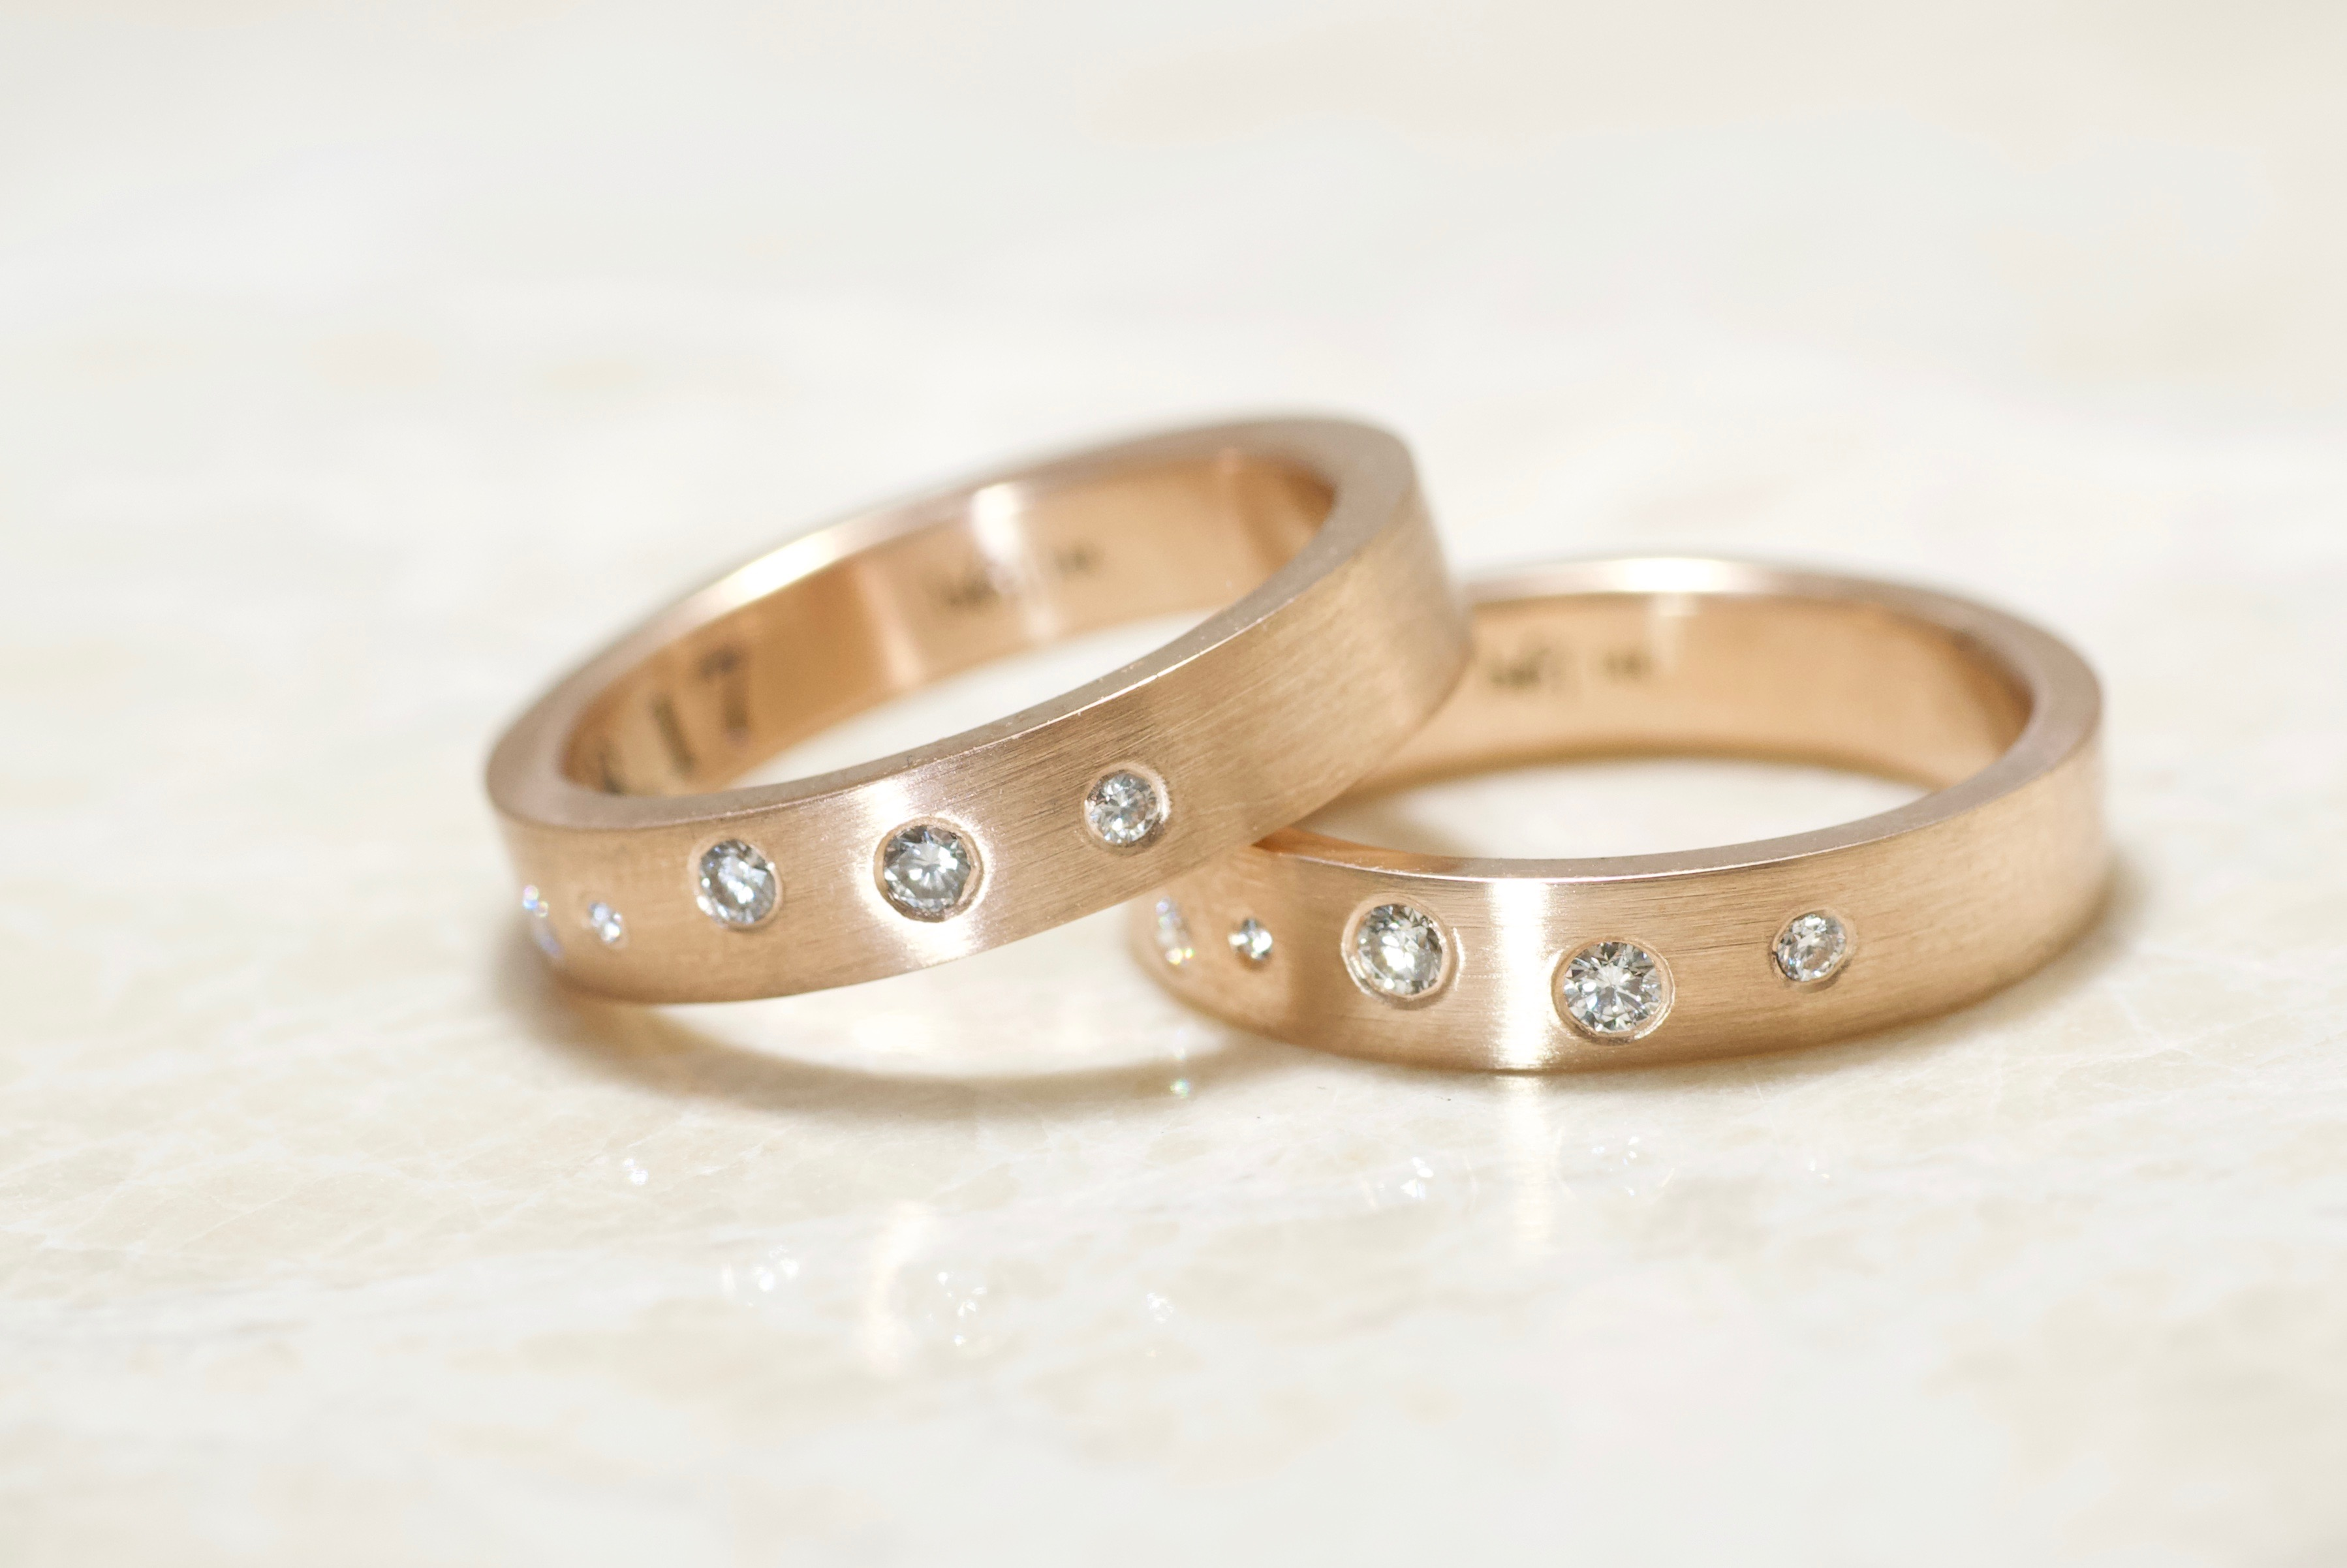 14k rose 4mm diamond scatter fingerprint rings by Brent&Jess